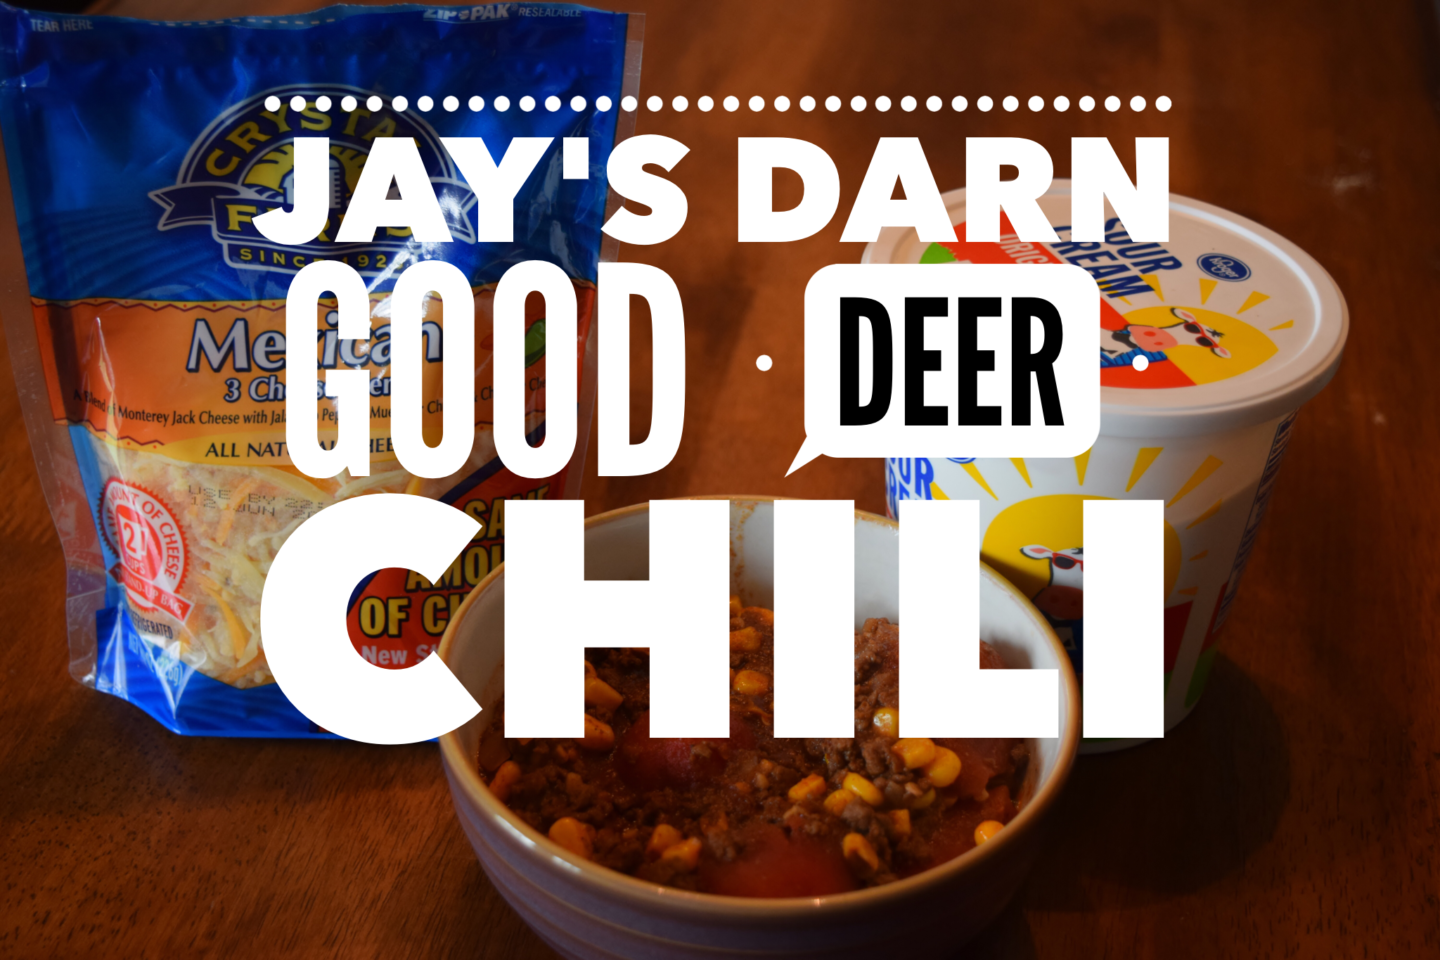 Jay's Darn Good Deer Chili